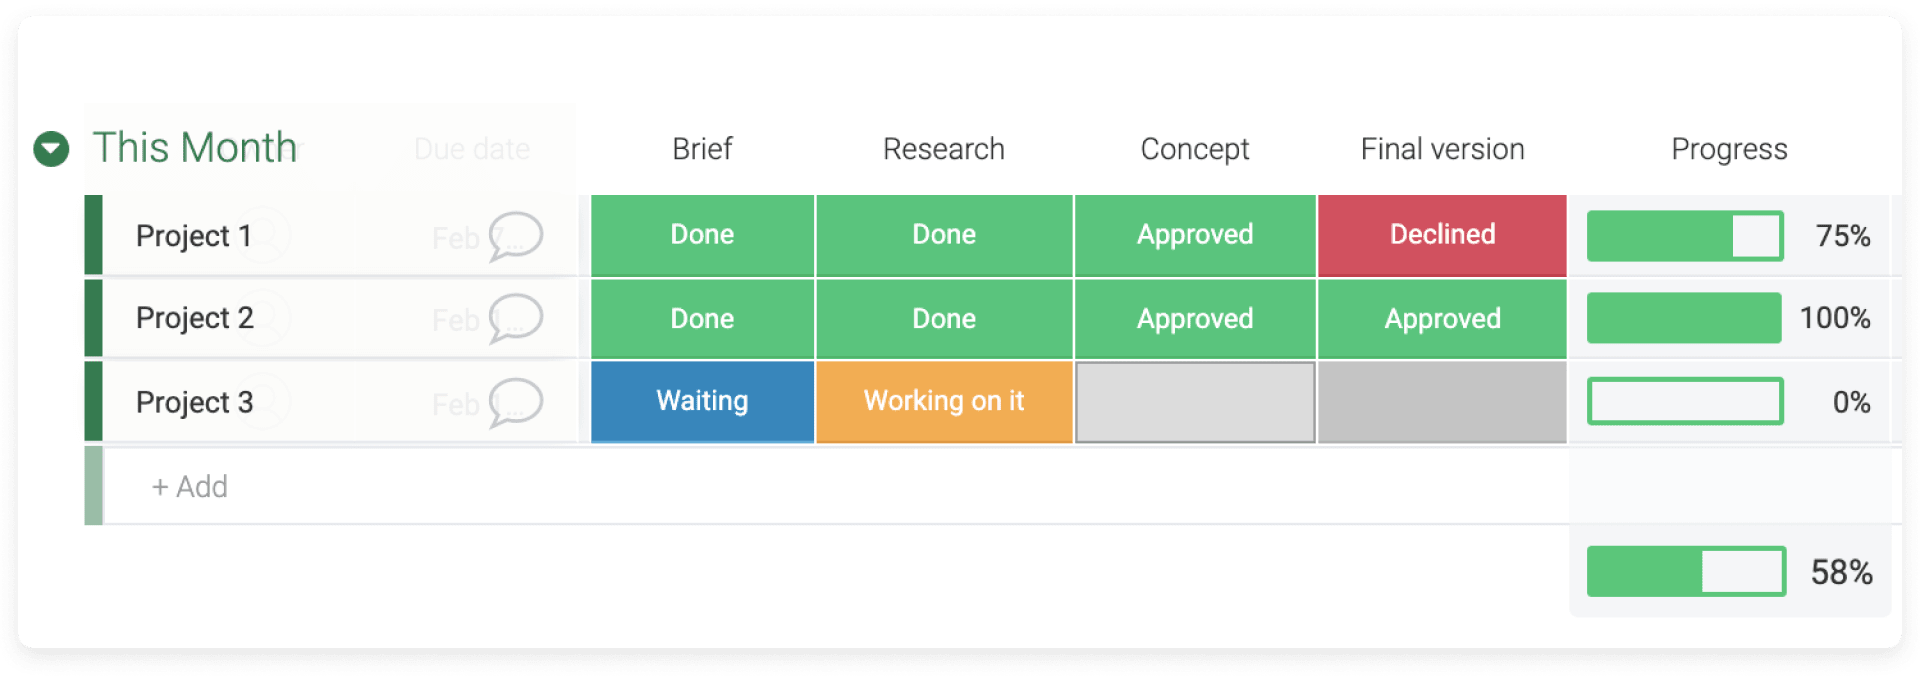 monday.com's progress tracker allows users to see how their tasks are progressing